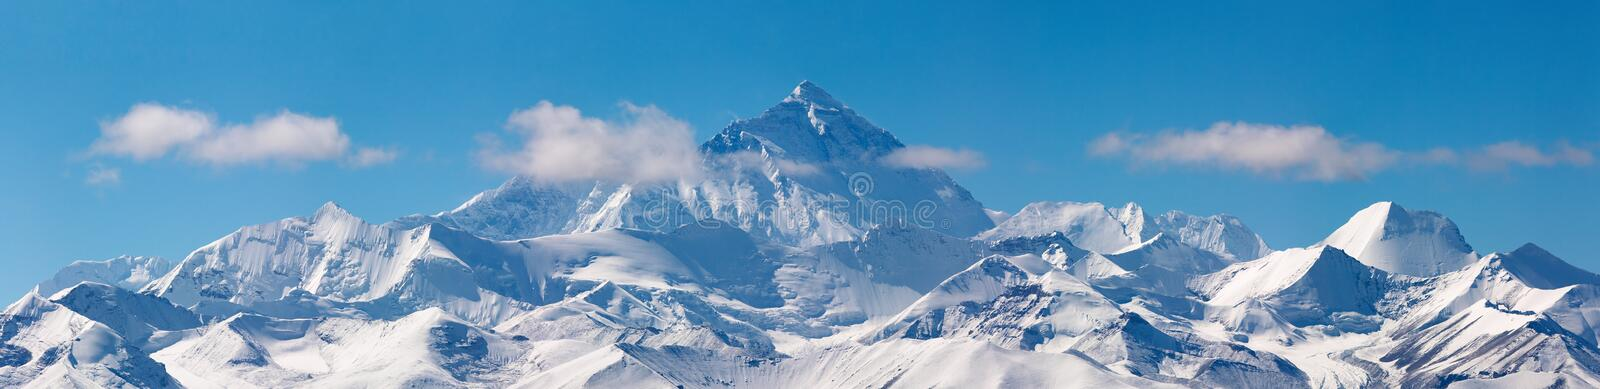 mount everest obrazy stock